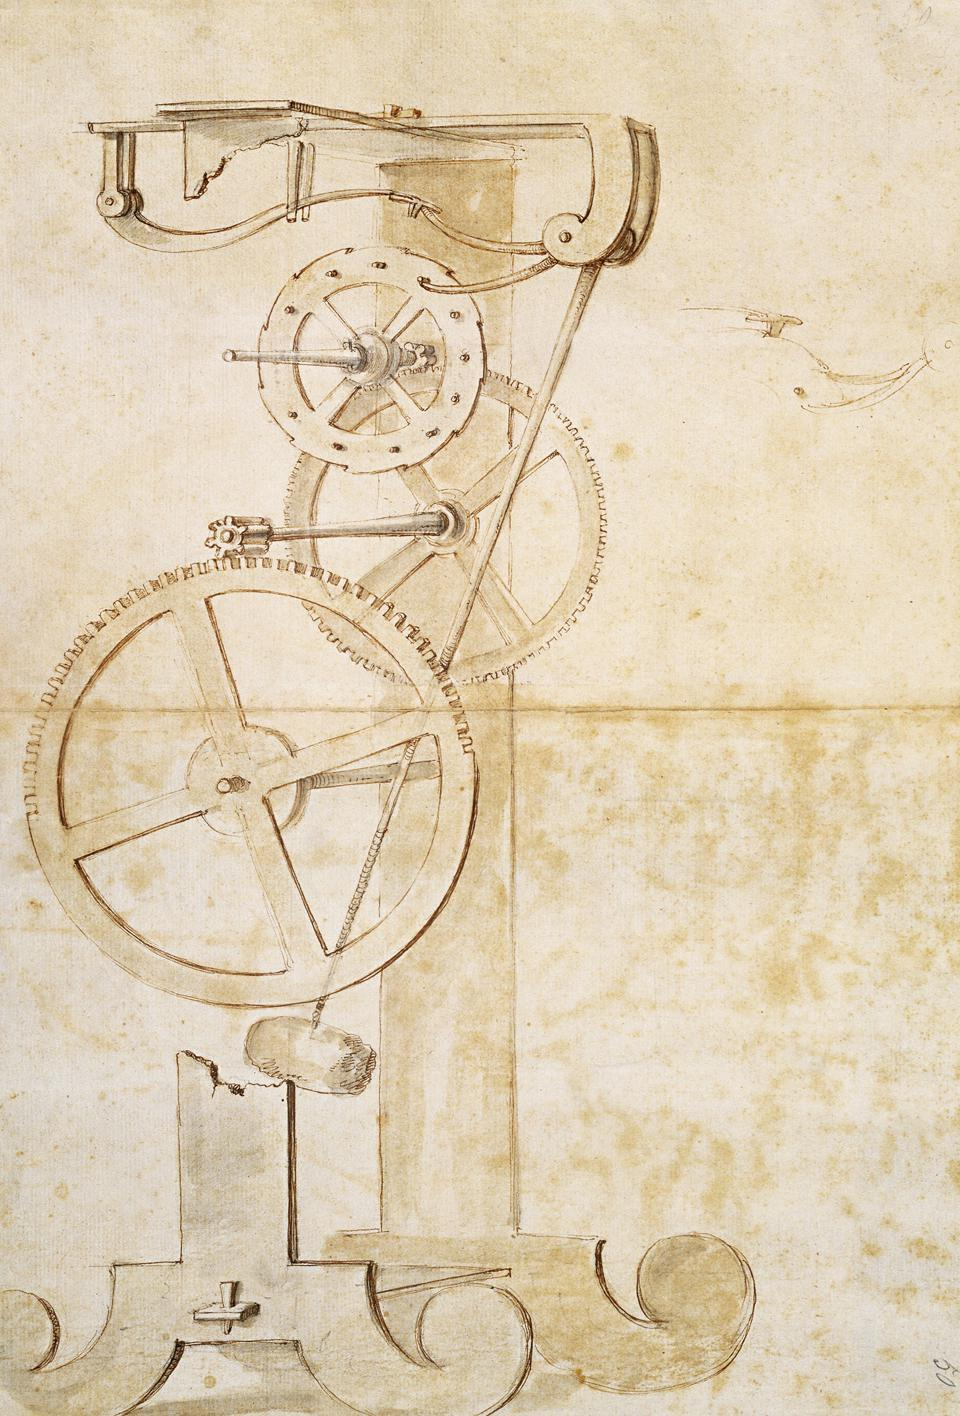 Drawing of Galileo's pendulum clock from circa 1637.